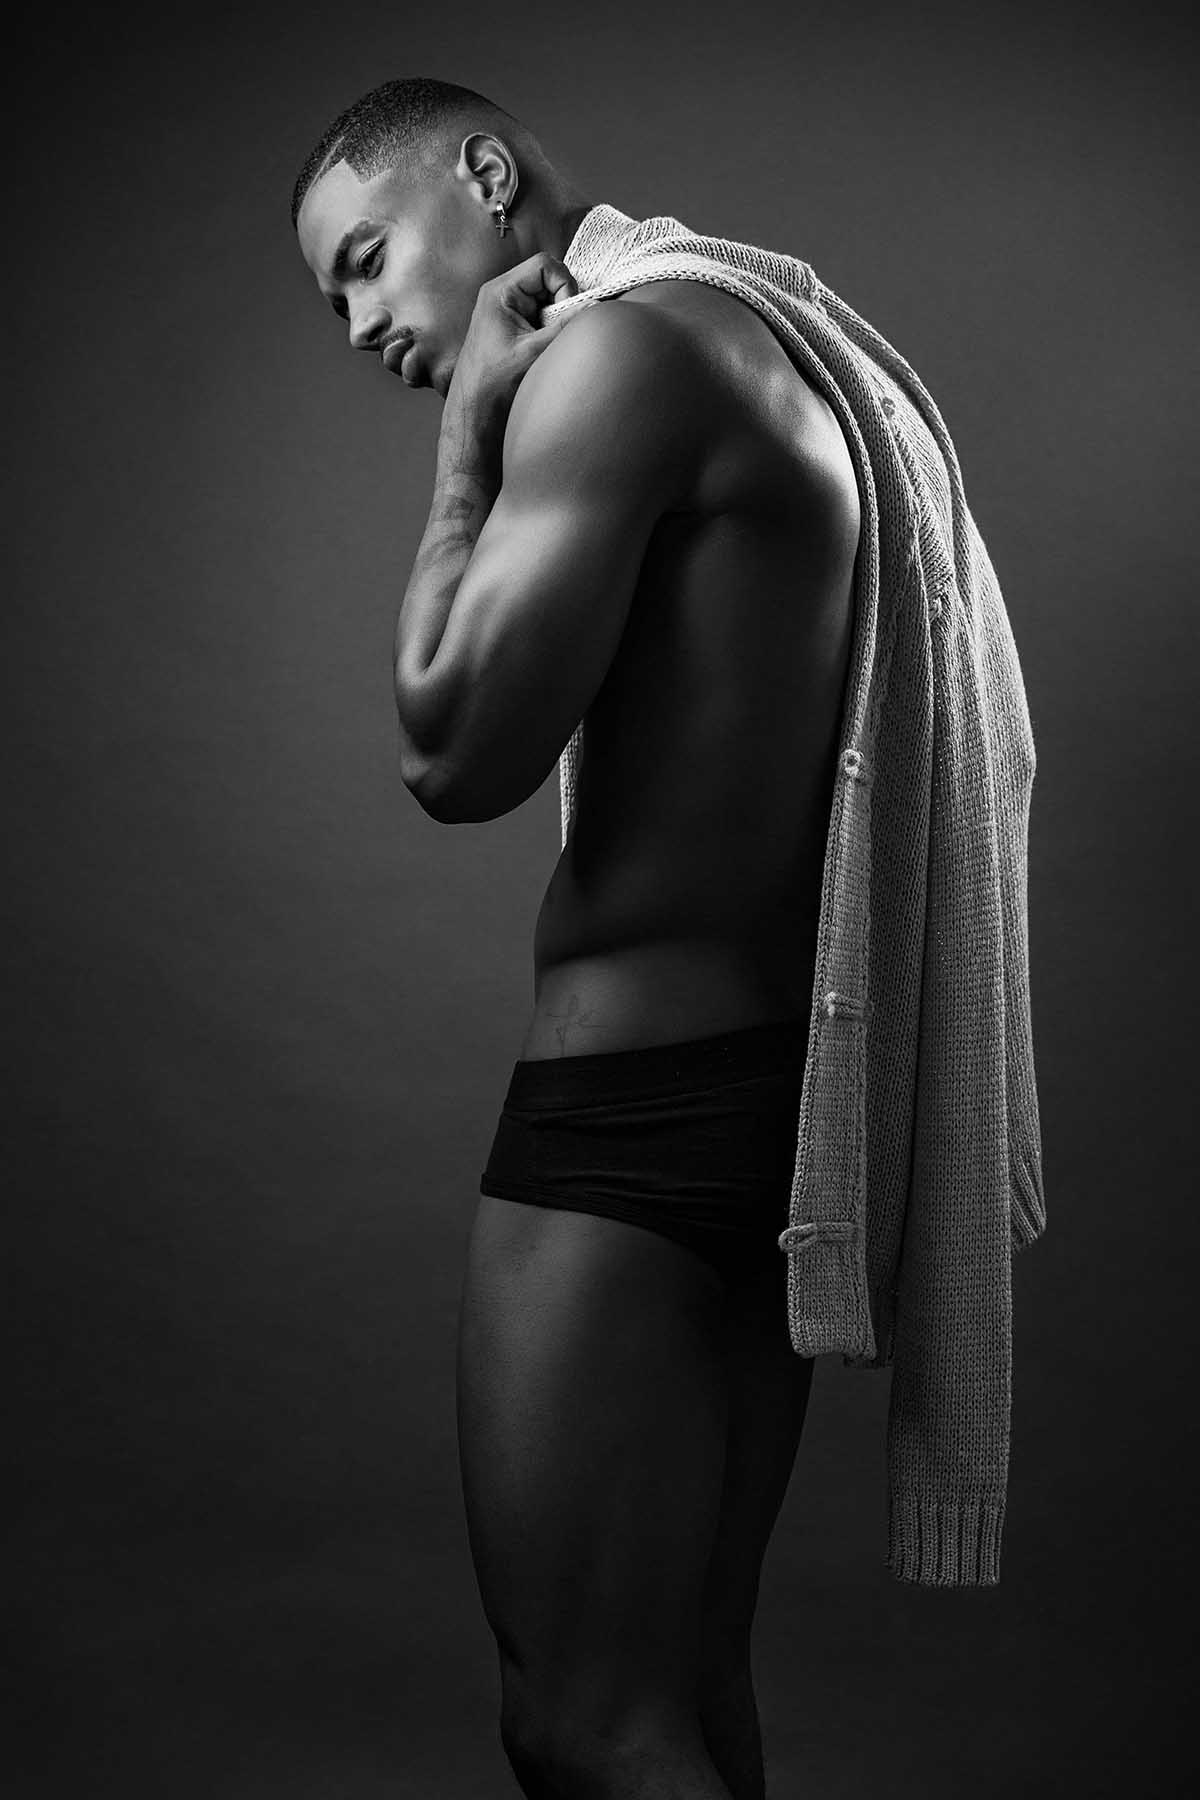 Bruno Pity By Vinny Soares for Brazilian Male Model